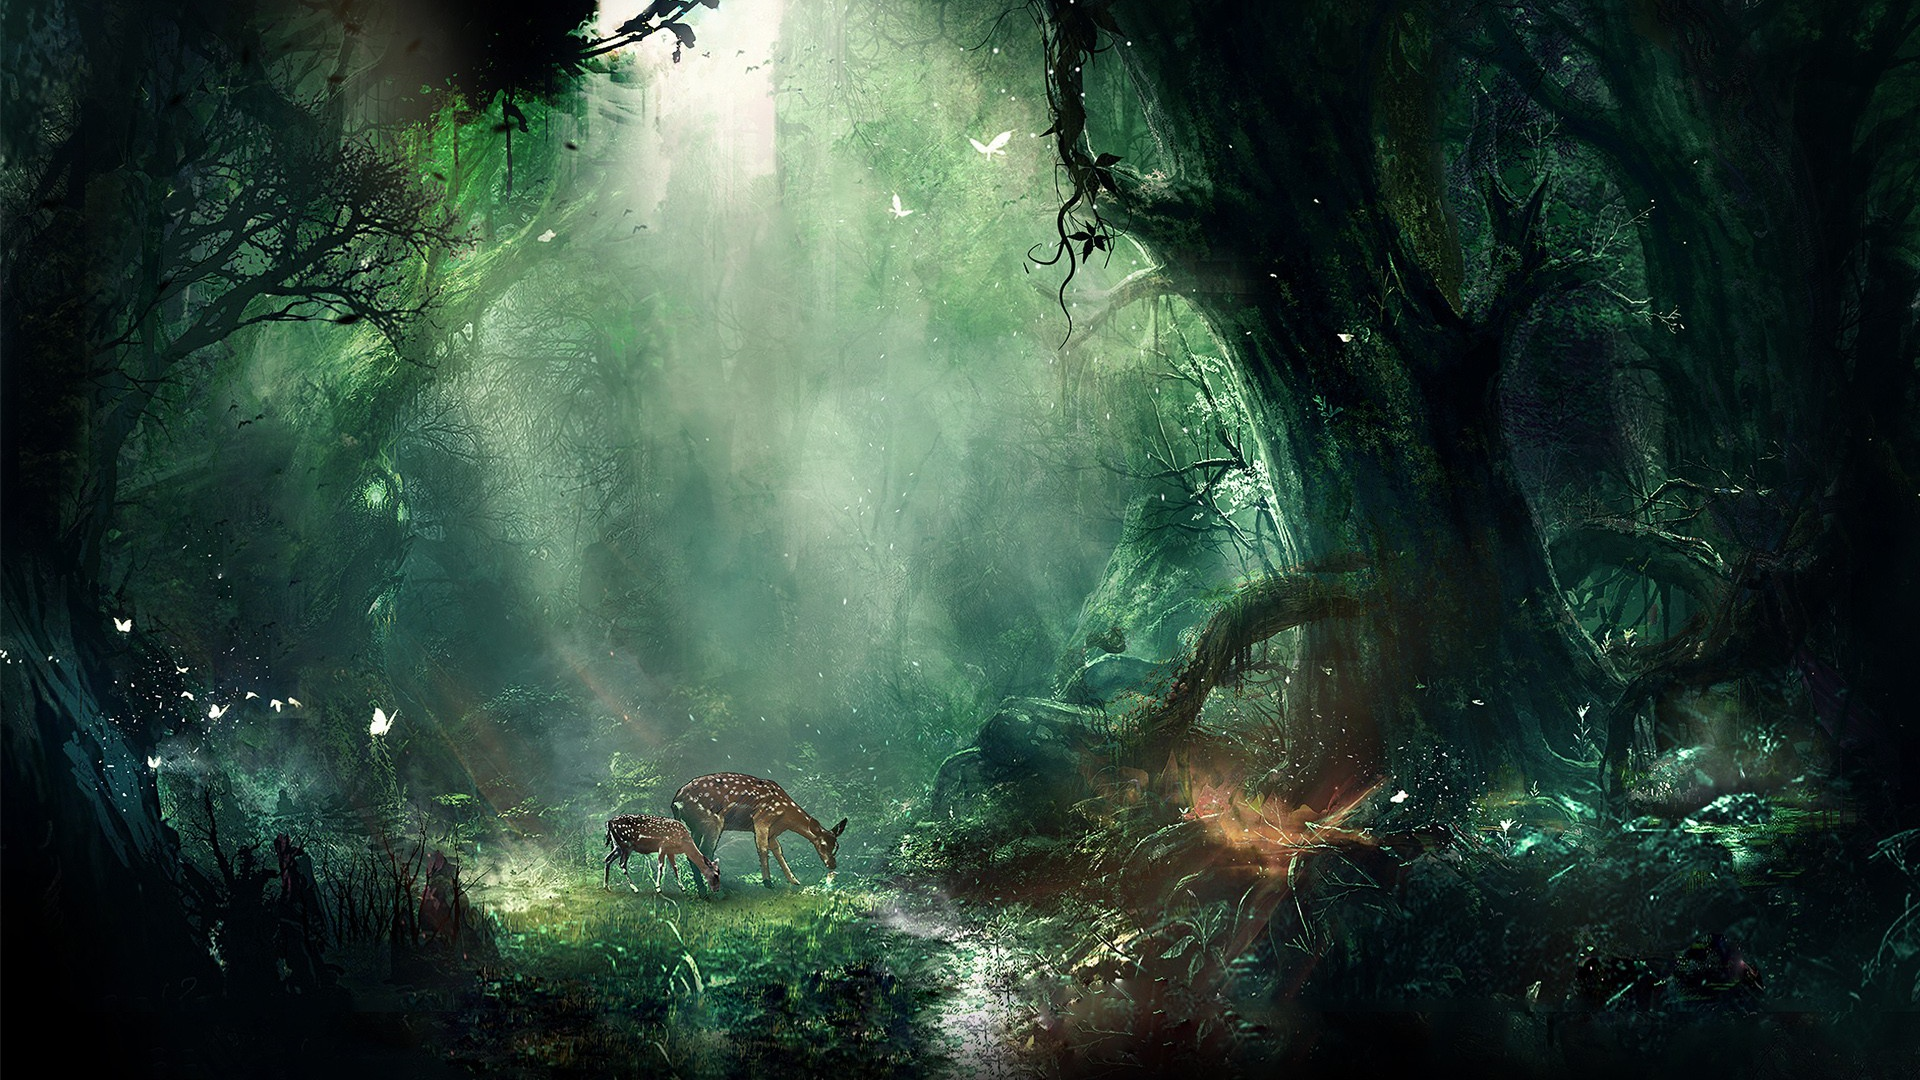 Fantasy wallpaper hd 1920x1080